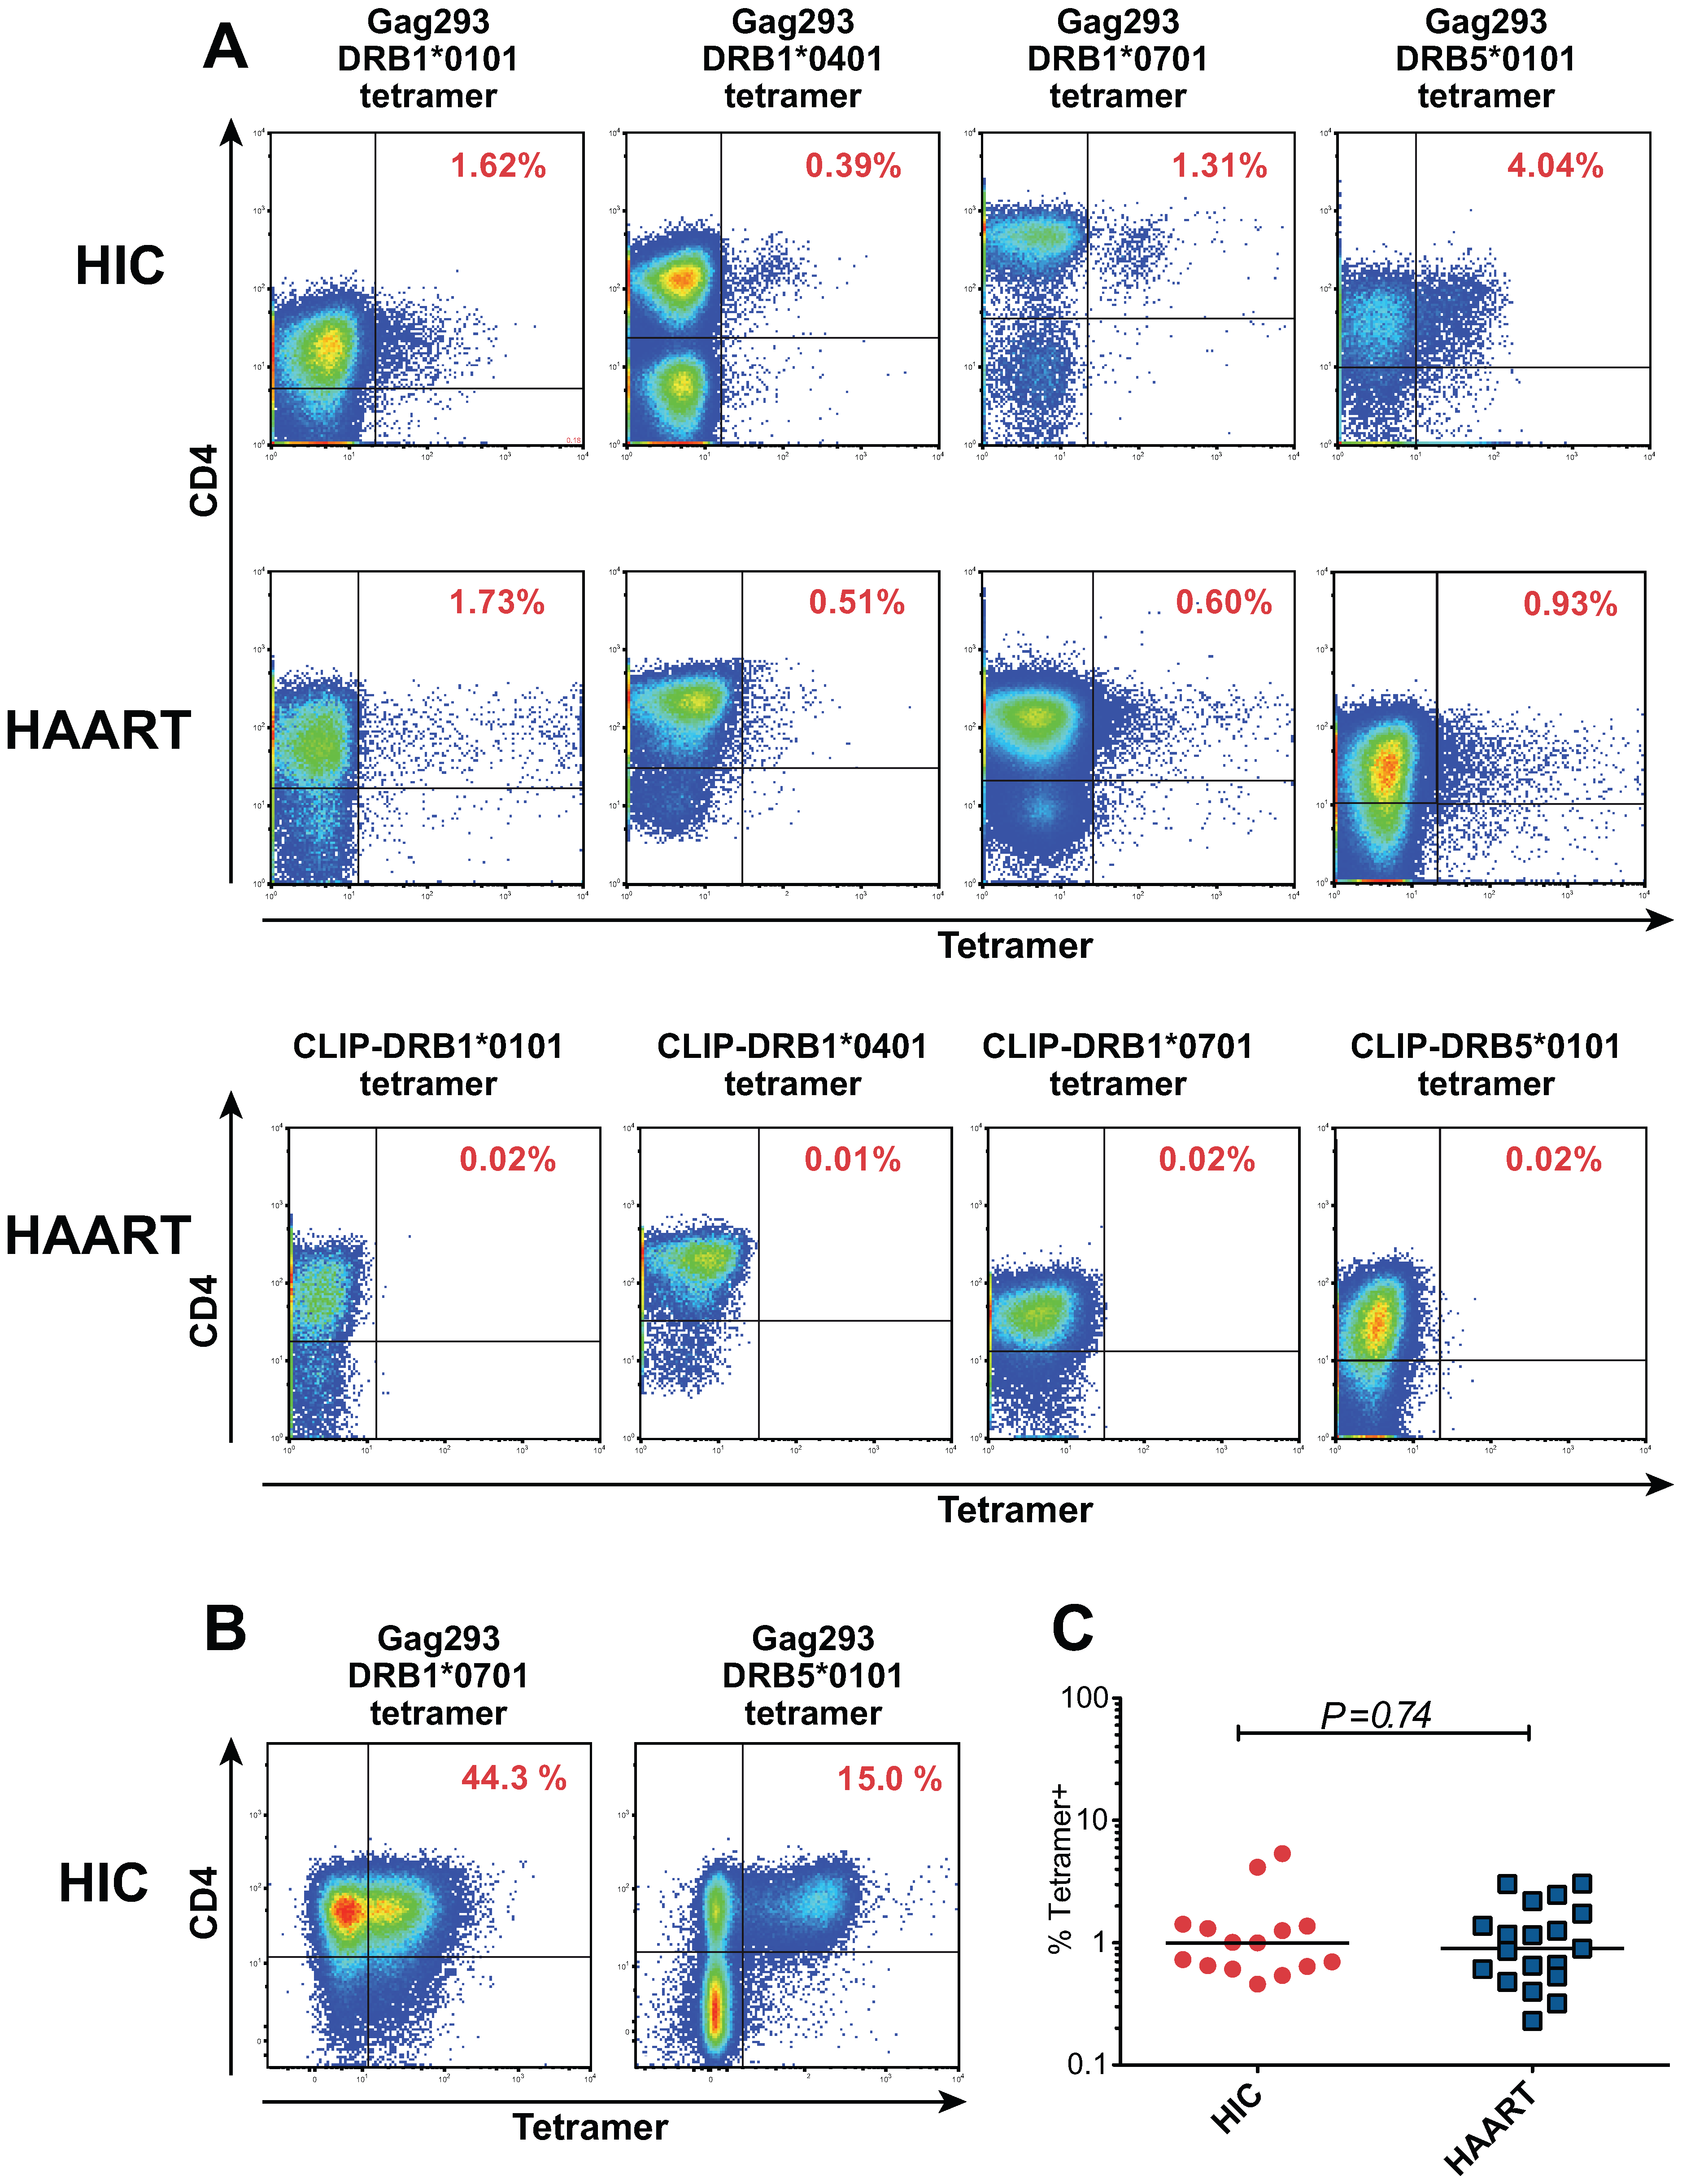 Characterization of HIV specific CD4+ T cells by MHC class II tetramer staining.